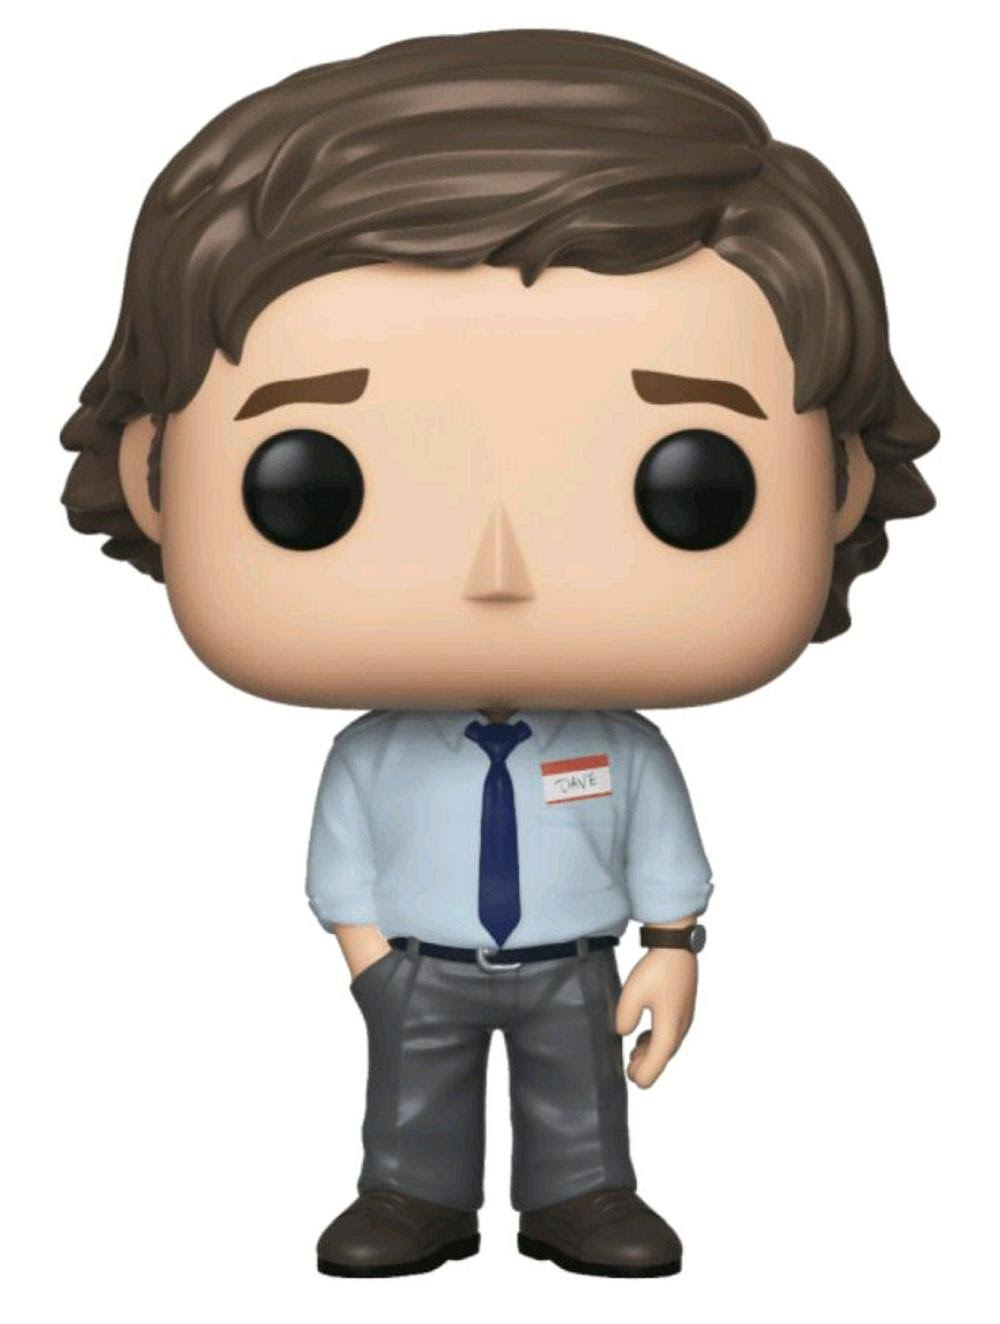 Funko Pop TV: The Office Jim Halpert Vinyl Action Figures